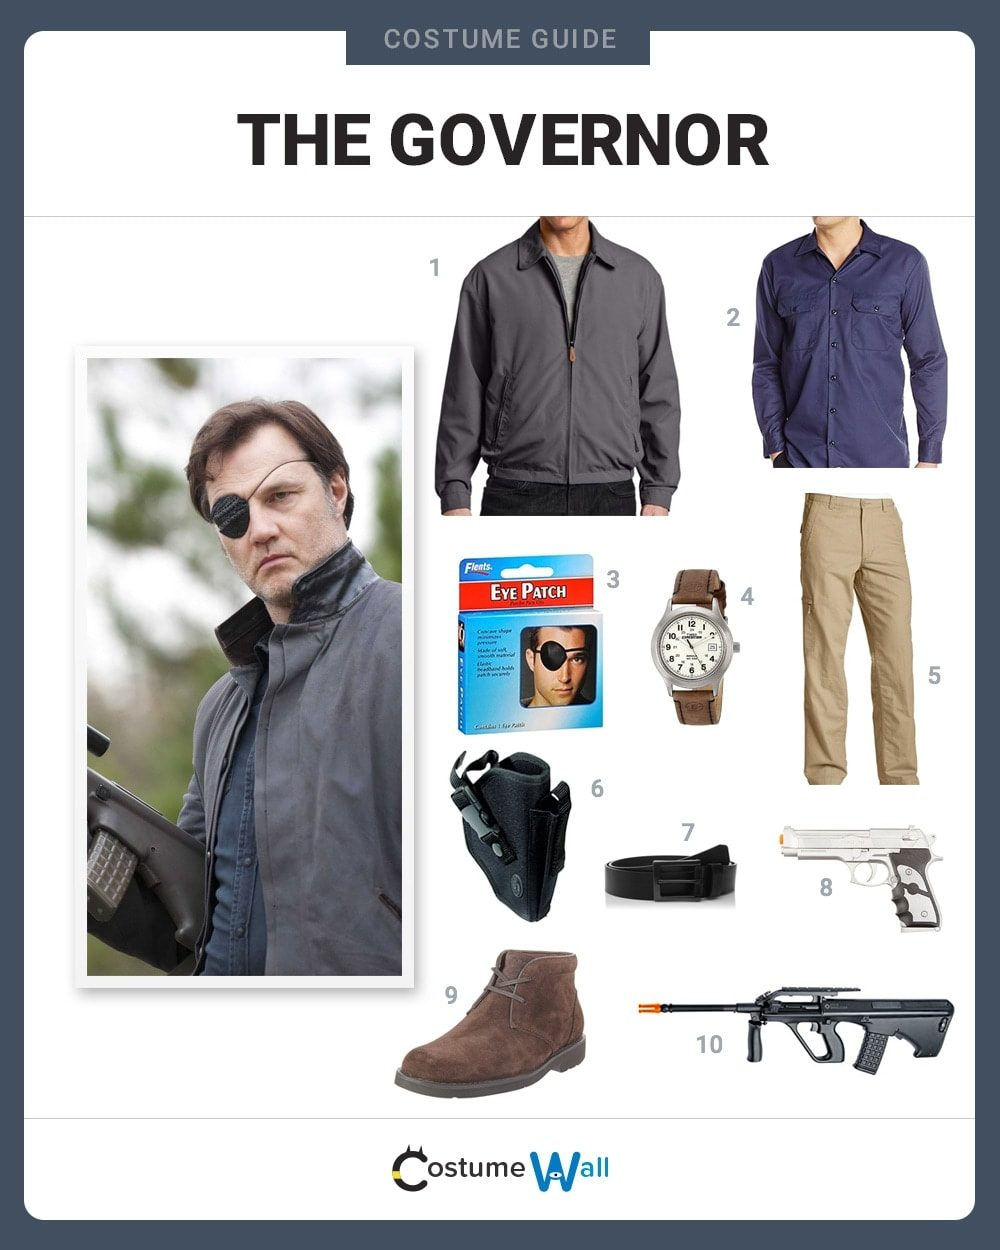 The Governor Costume Guide